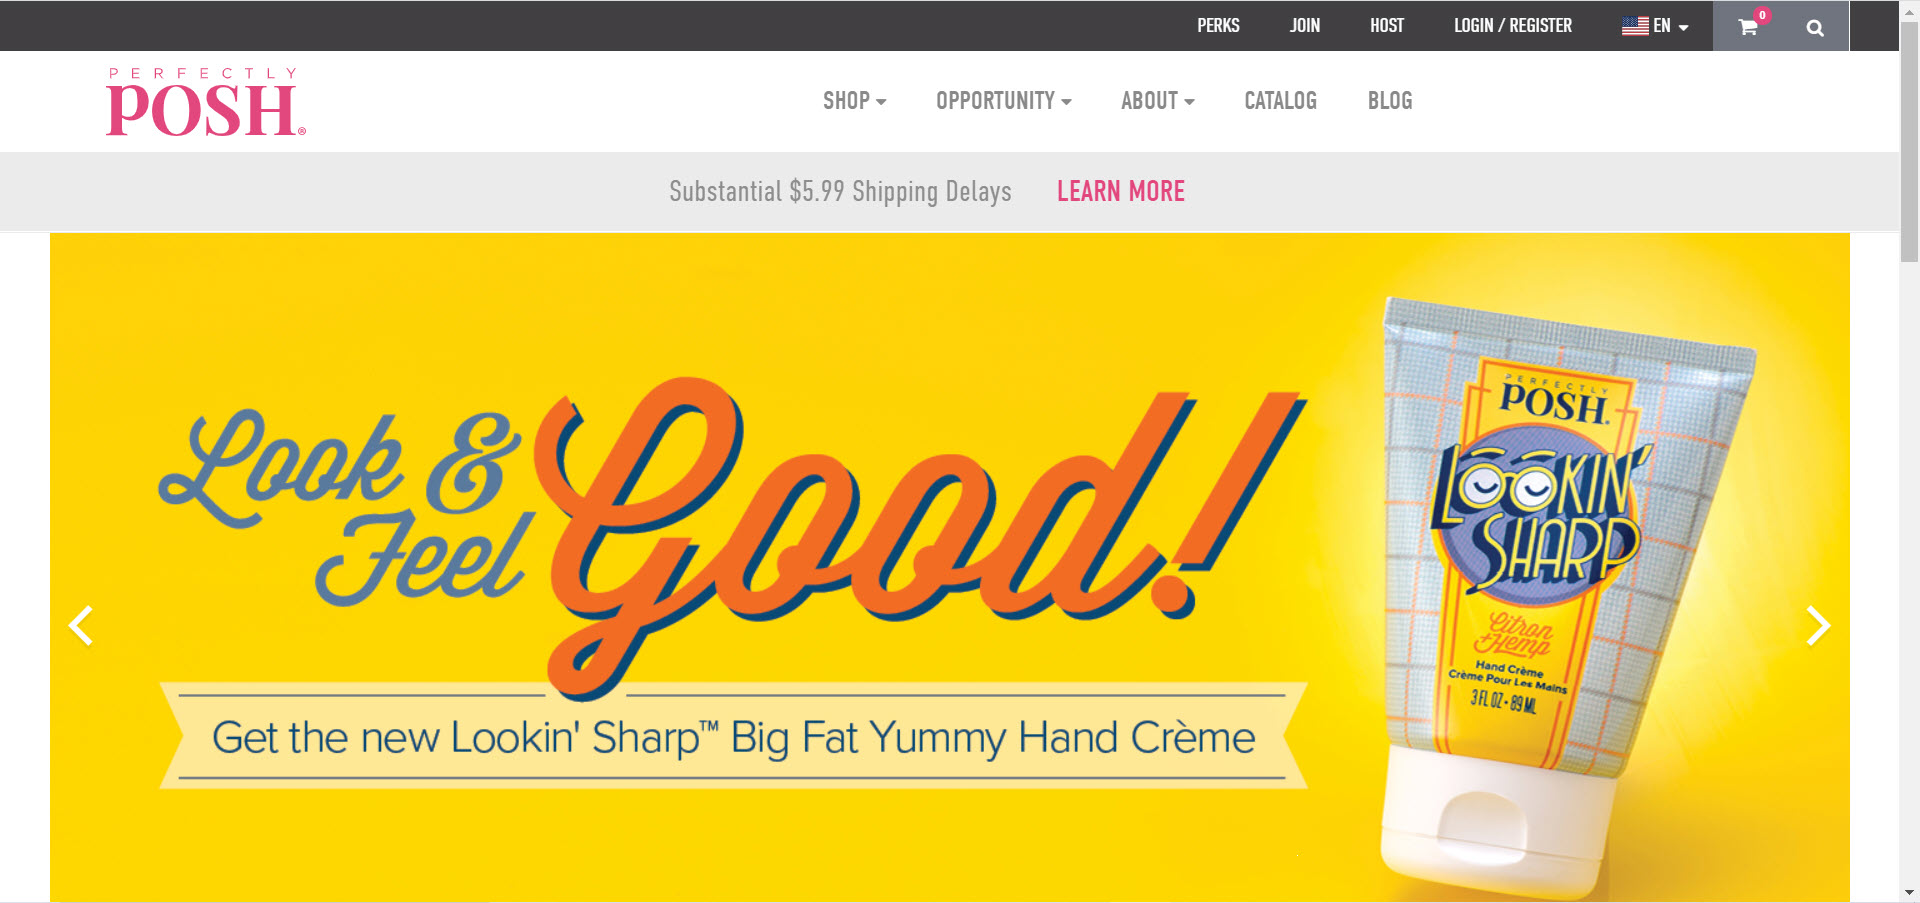 Perfectly Posh MLM Review - Home